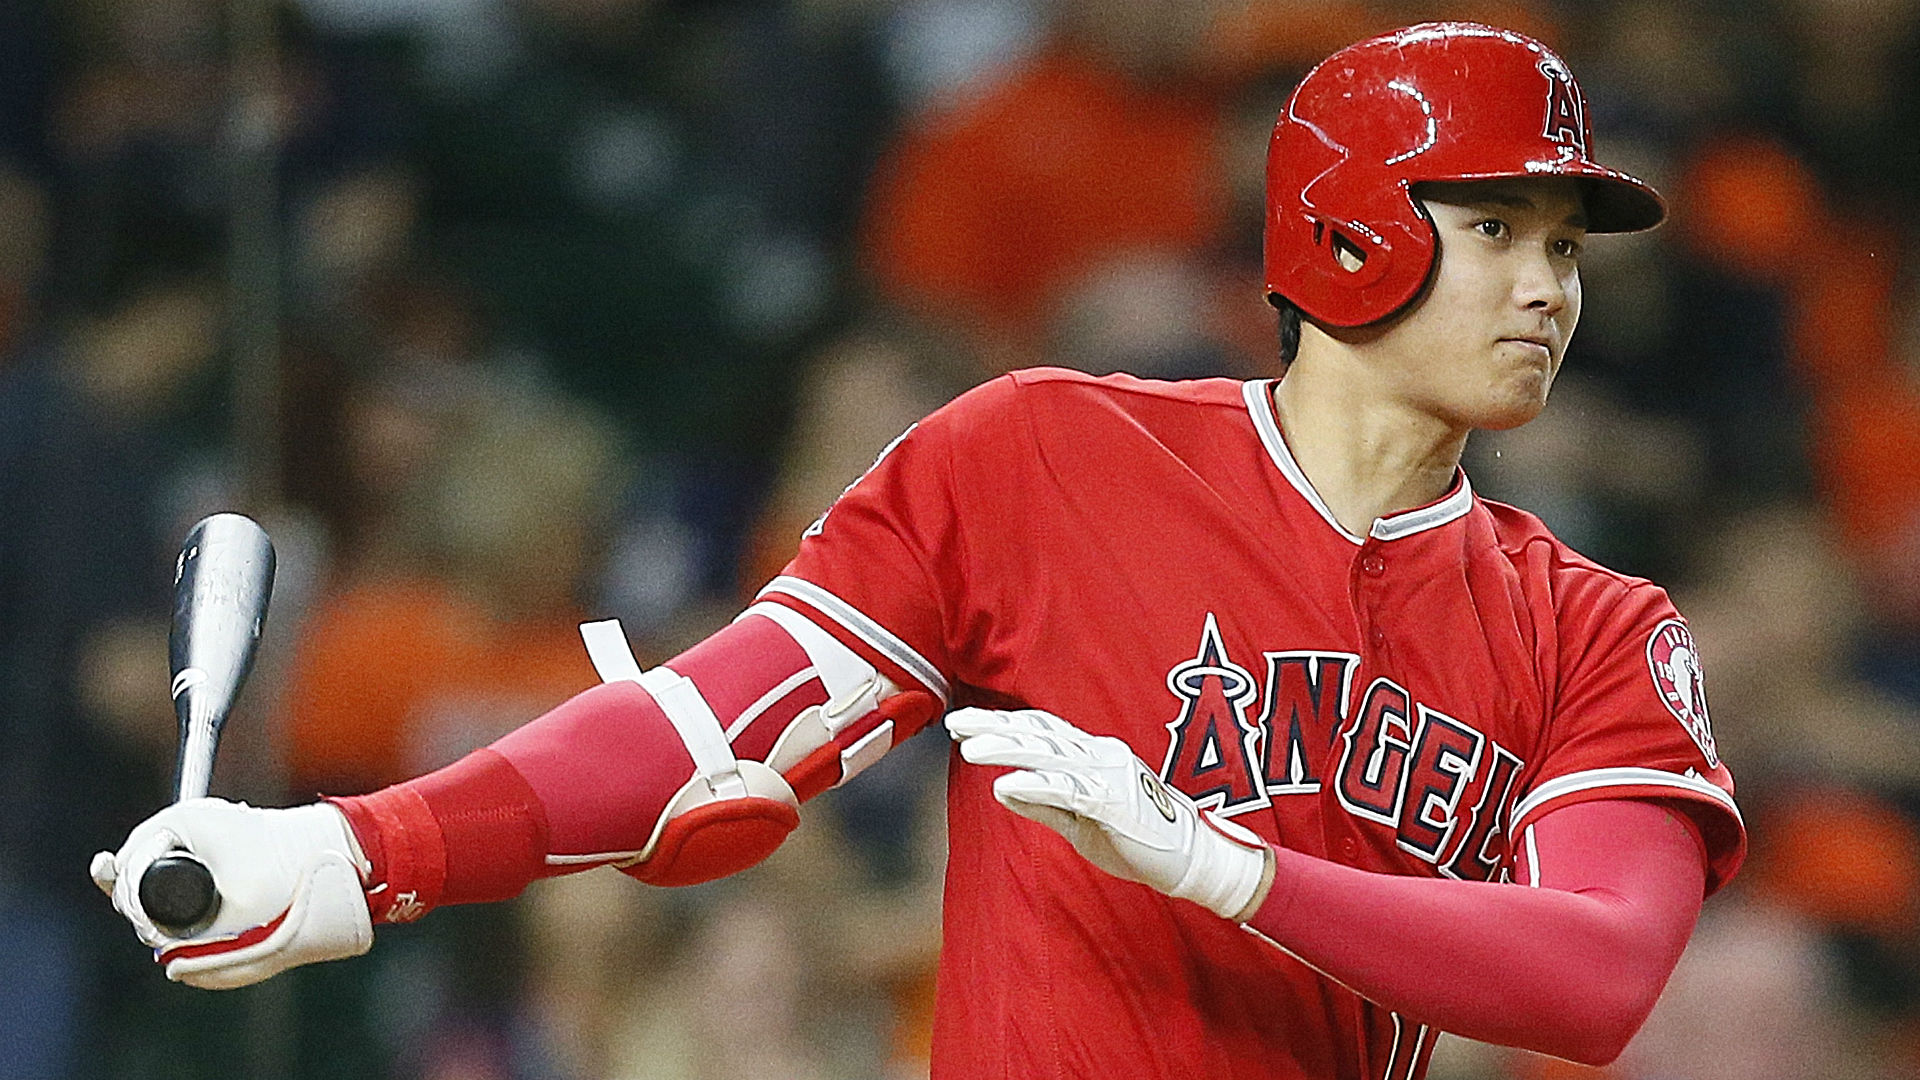 Shohei Ohtani injury update: Angels DH/P won't be ready for Opening Day, GM says